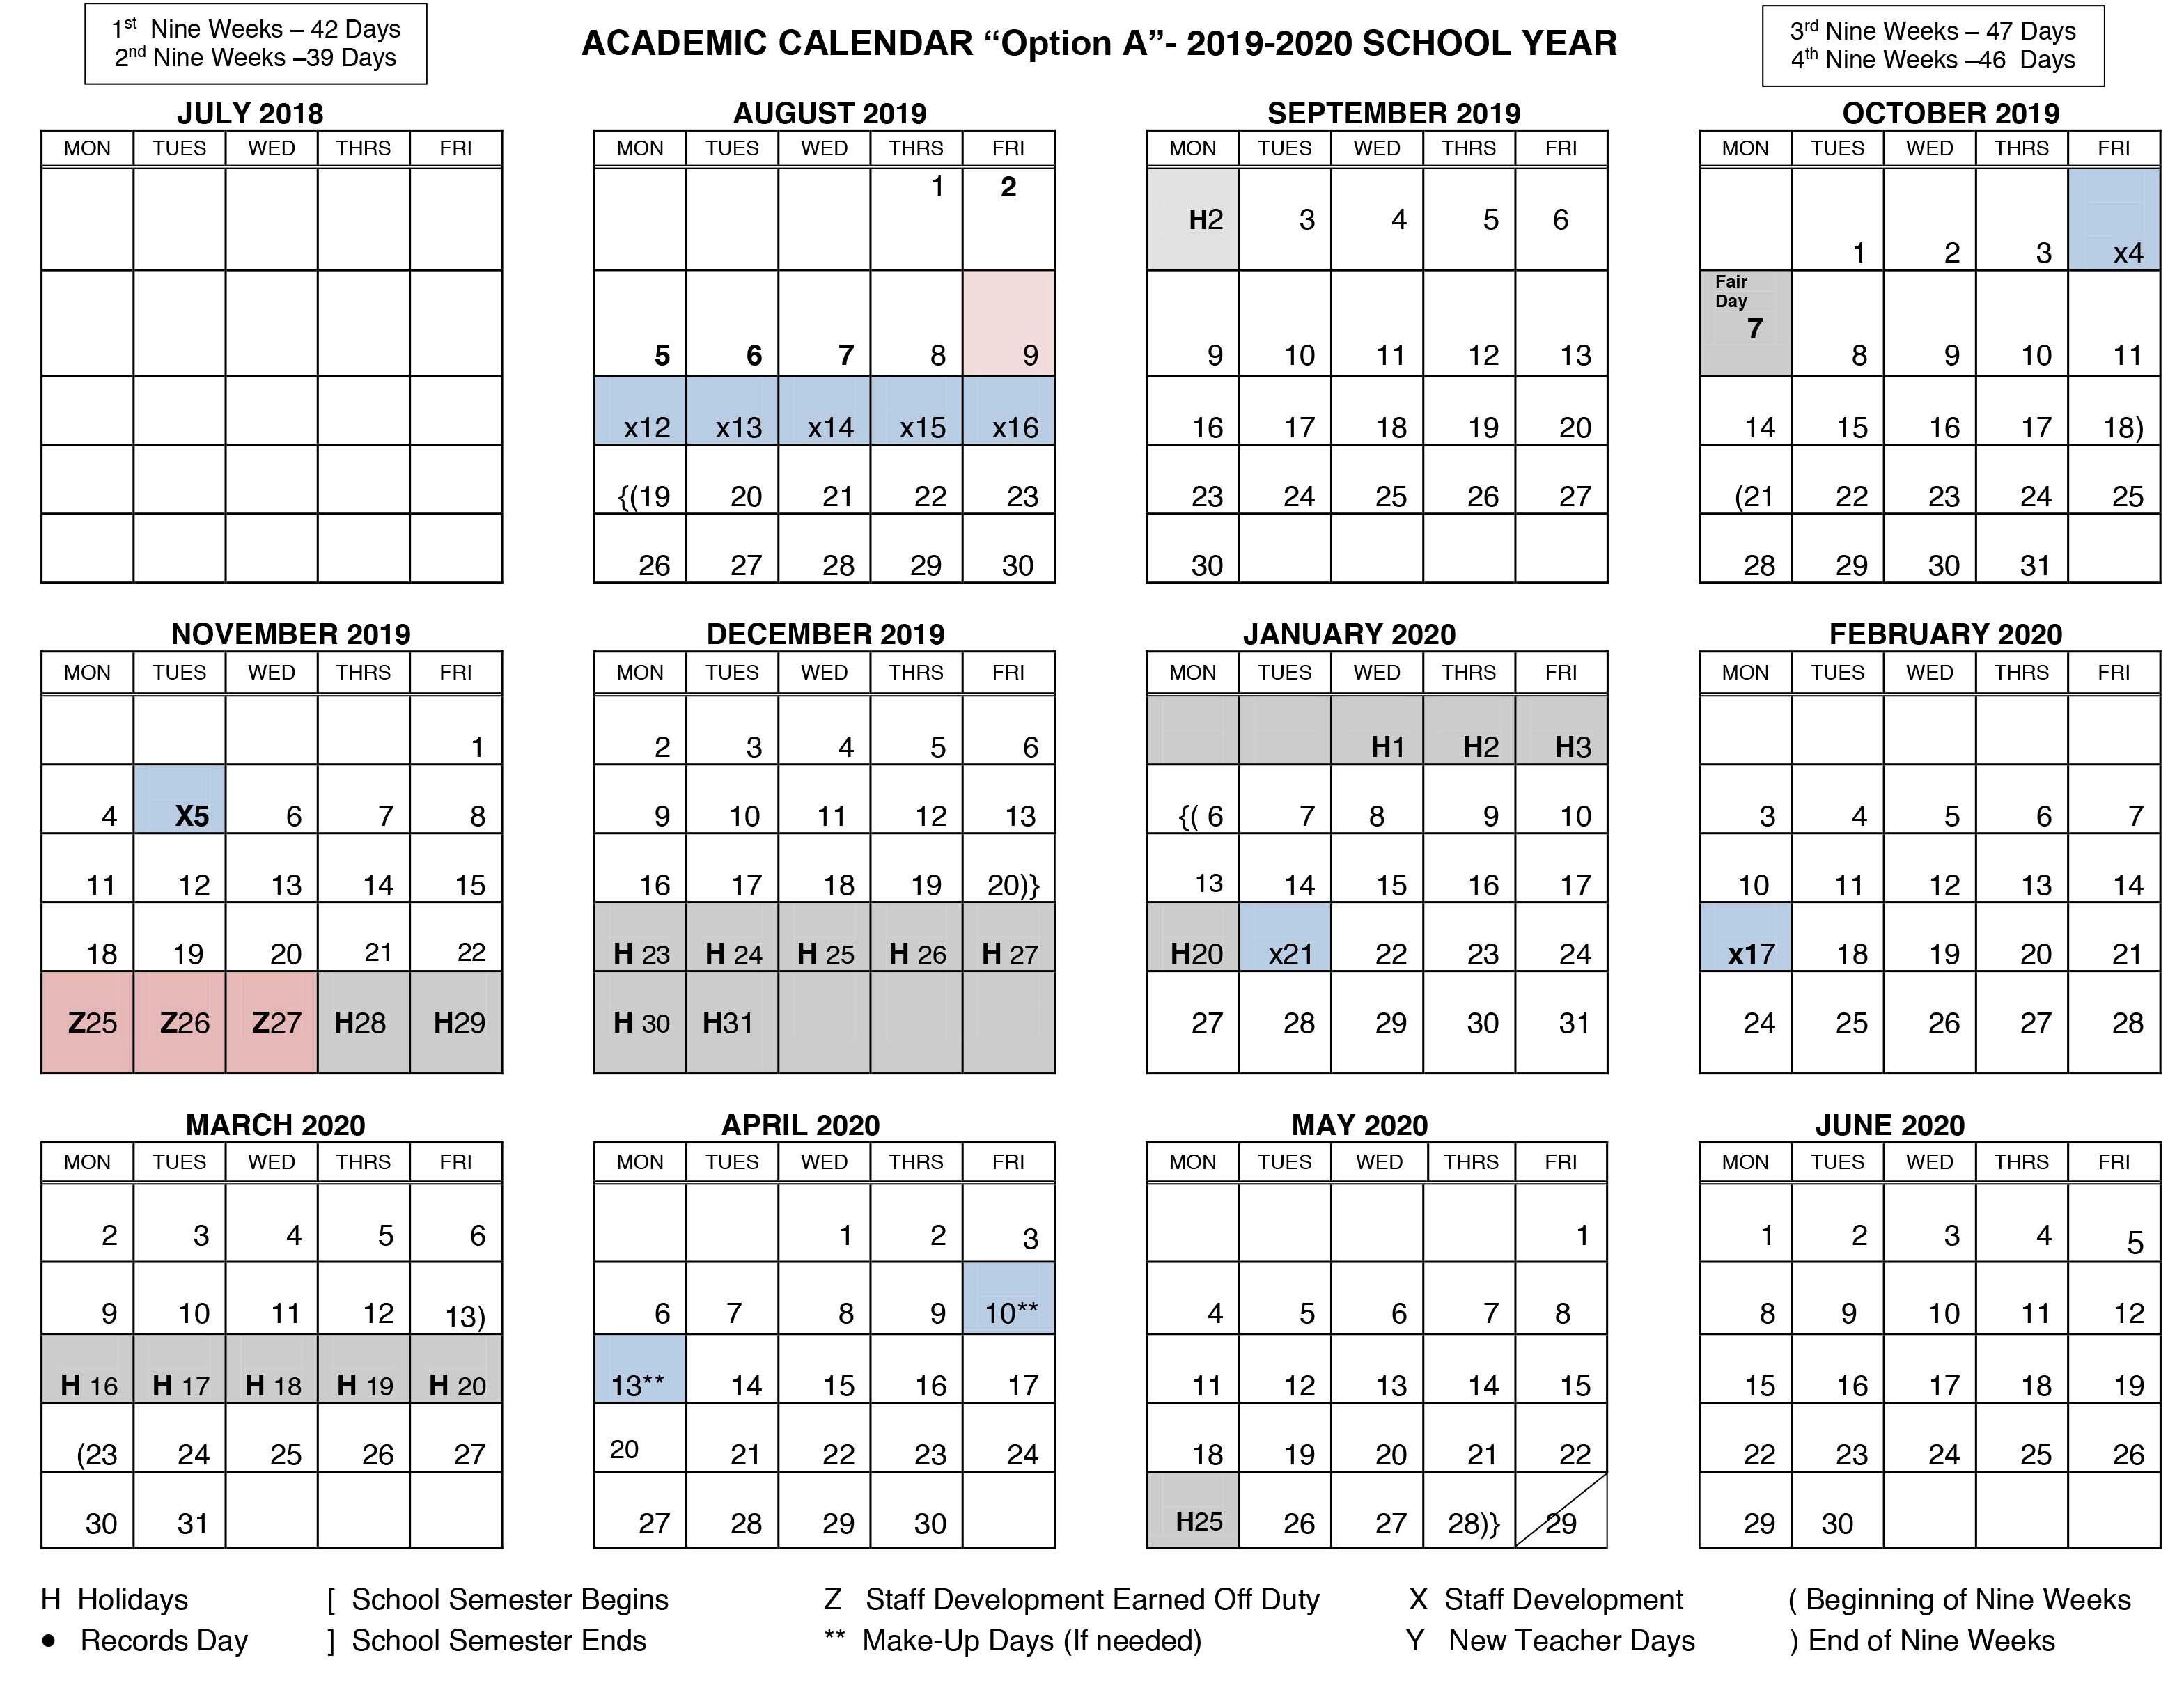 Texas State Spring 2020 Calendar.Board Discusses 2019 2020 Student Academic Calendar